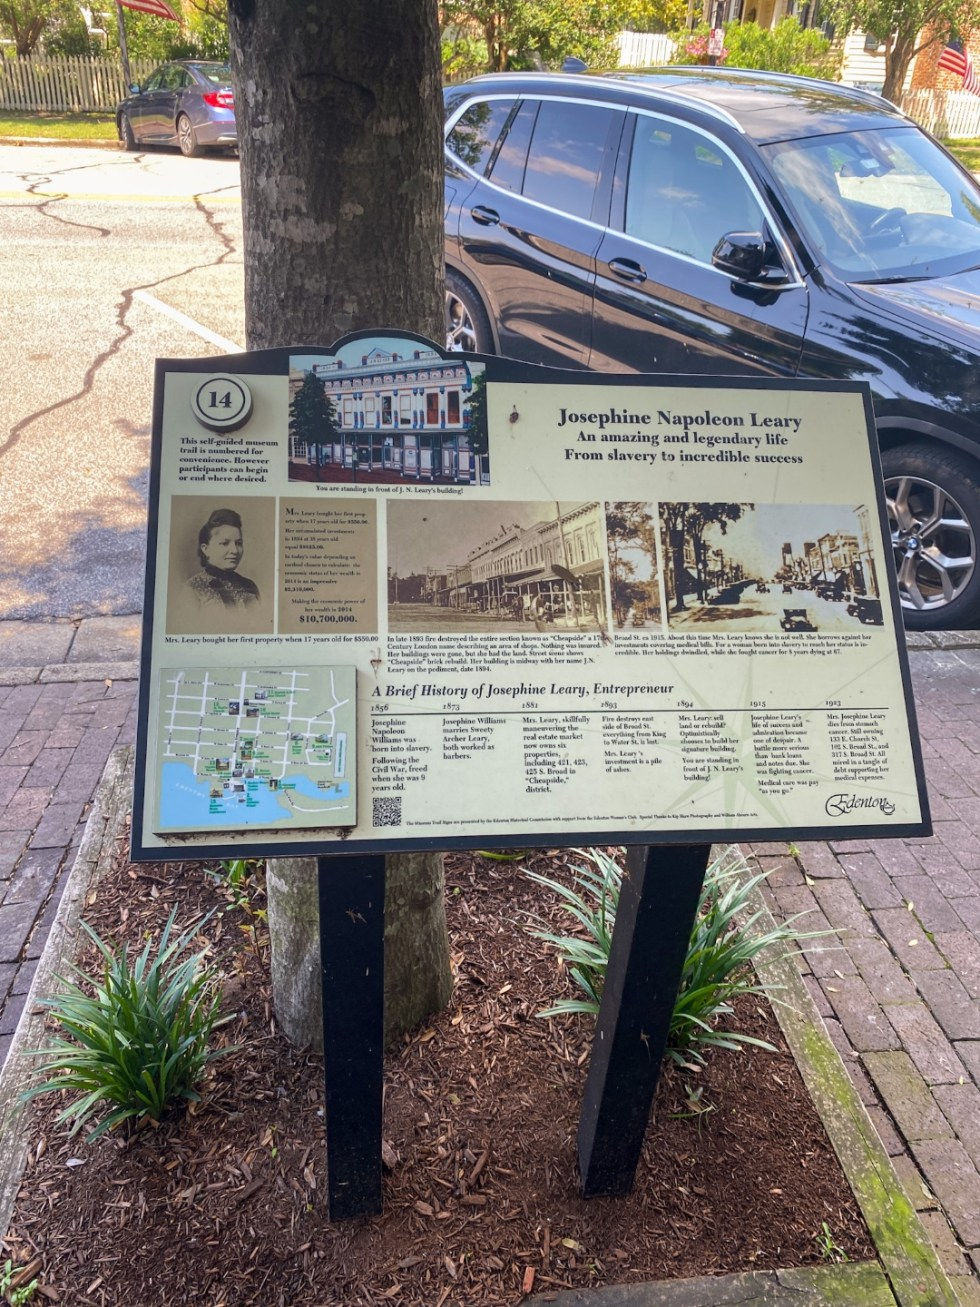 Top 10 Best Things to Do in Edenton, NC: A Complete Travel Guide - I'm Fixin' To - @imfixintoblog | Edenton Travel Guide by popular NC travel guid, I'm Fixin' To: image of an Edenton Museum Trail sign.